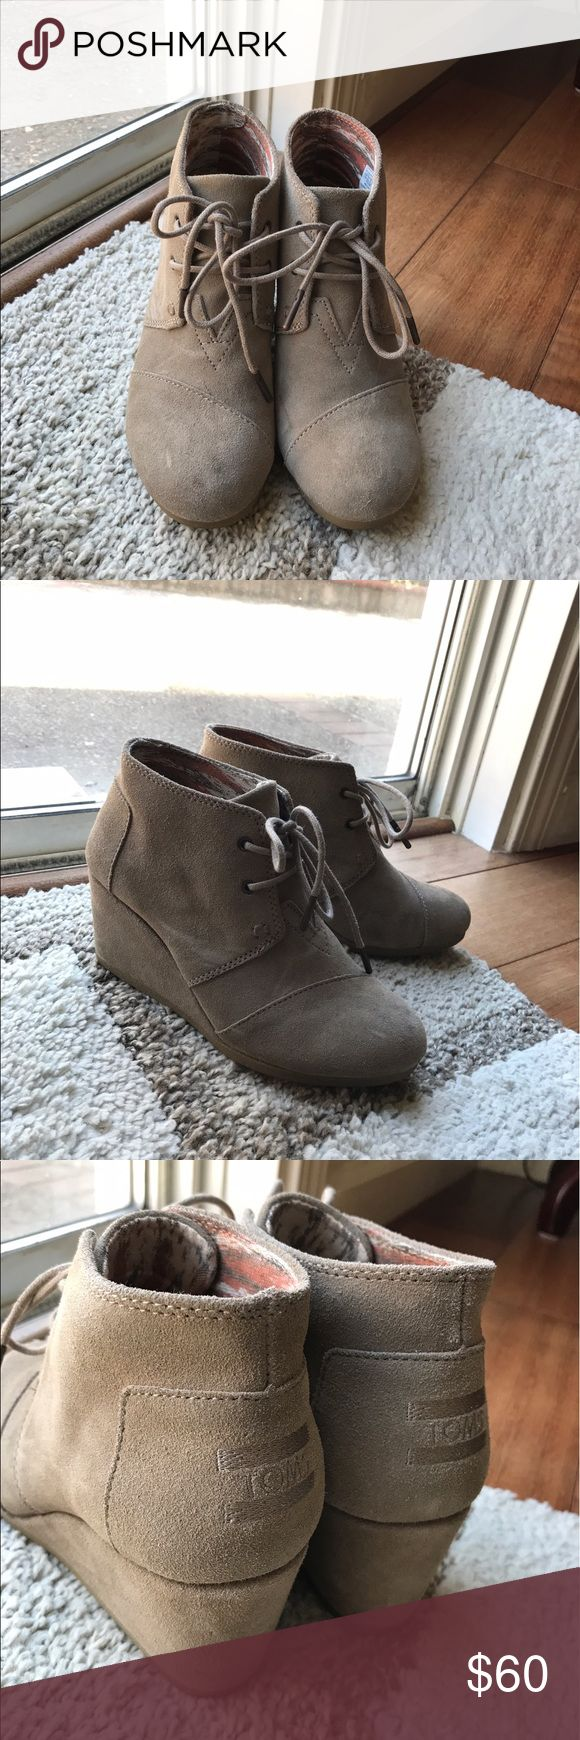 TOMS Taupe Suede Women's Desert Wedges ✨Comfy 70's style, taupe wedge boots  ✨Lightly worn 3x                                                                   ✨Final sale TOMS Shoes Ankle Boots & Booties